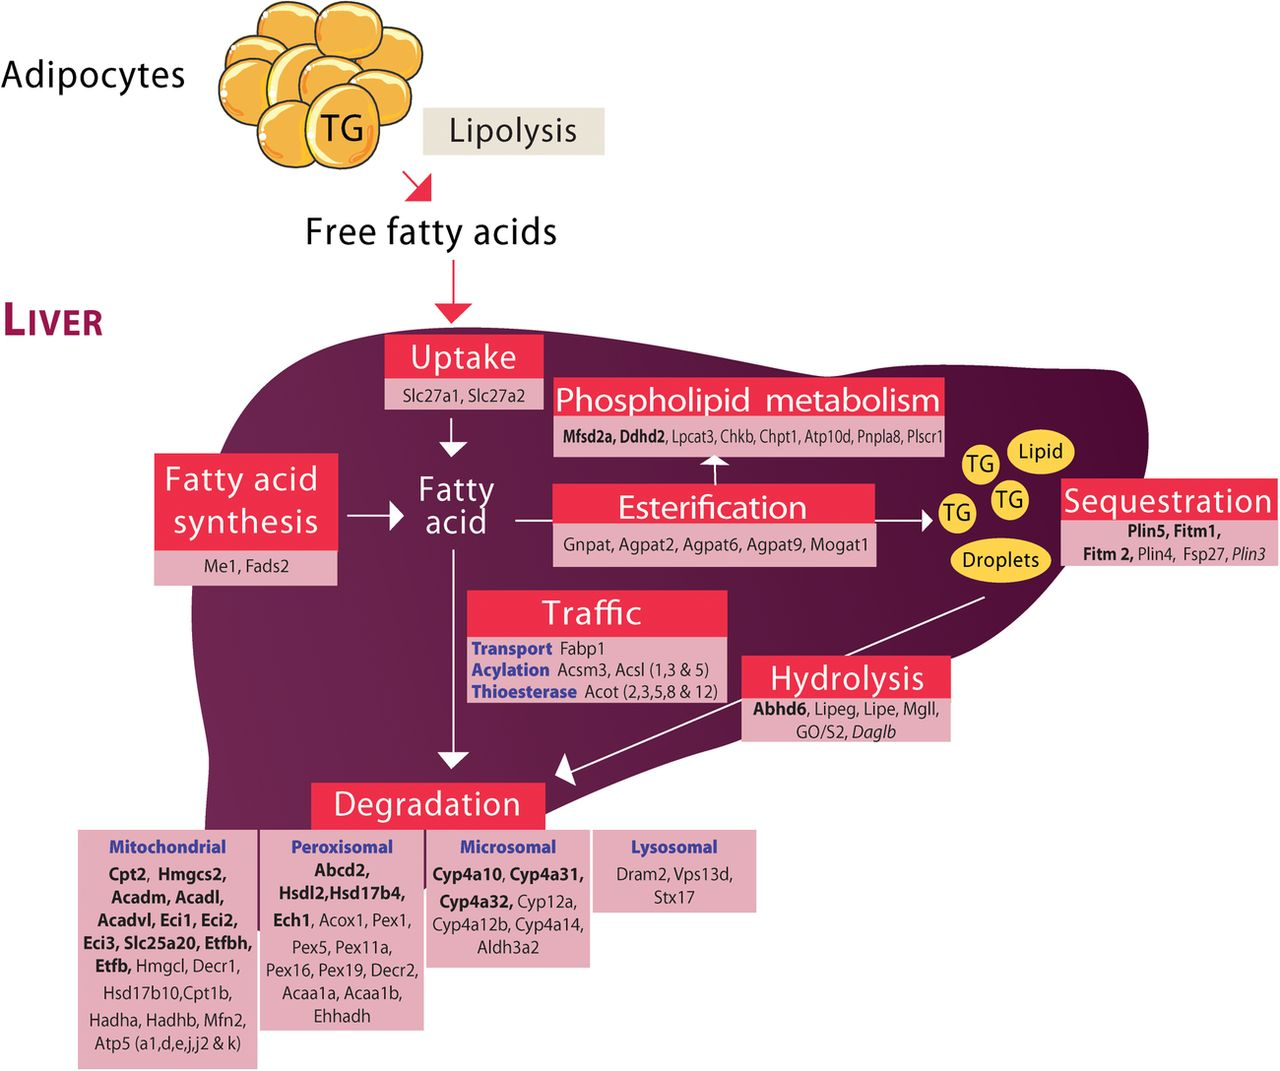 Liver Ppar Is Crucial For Whole Body Fatty Acid